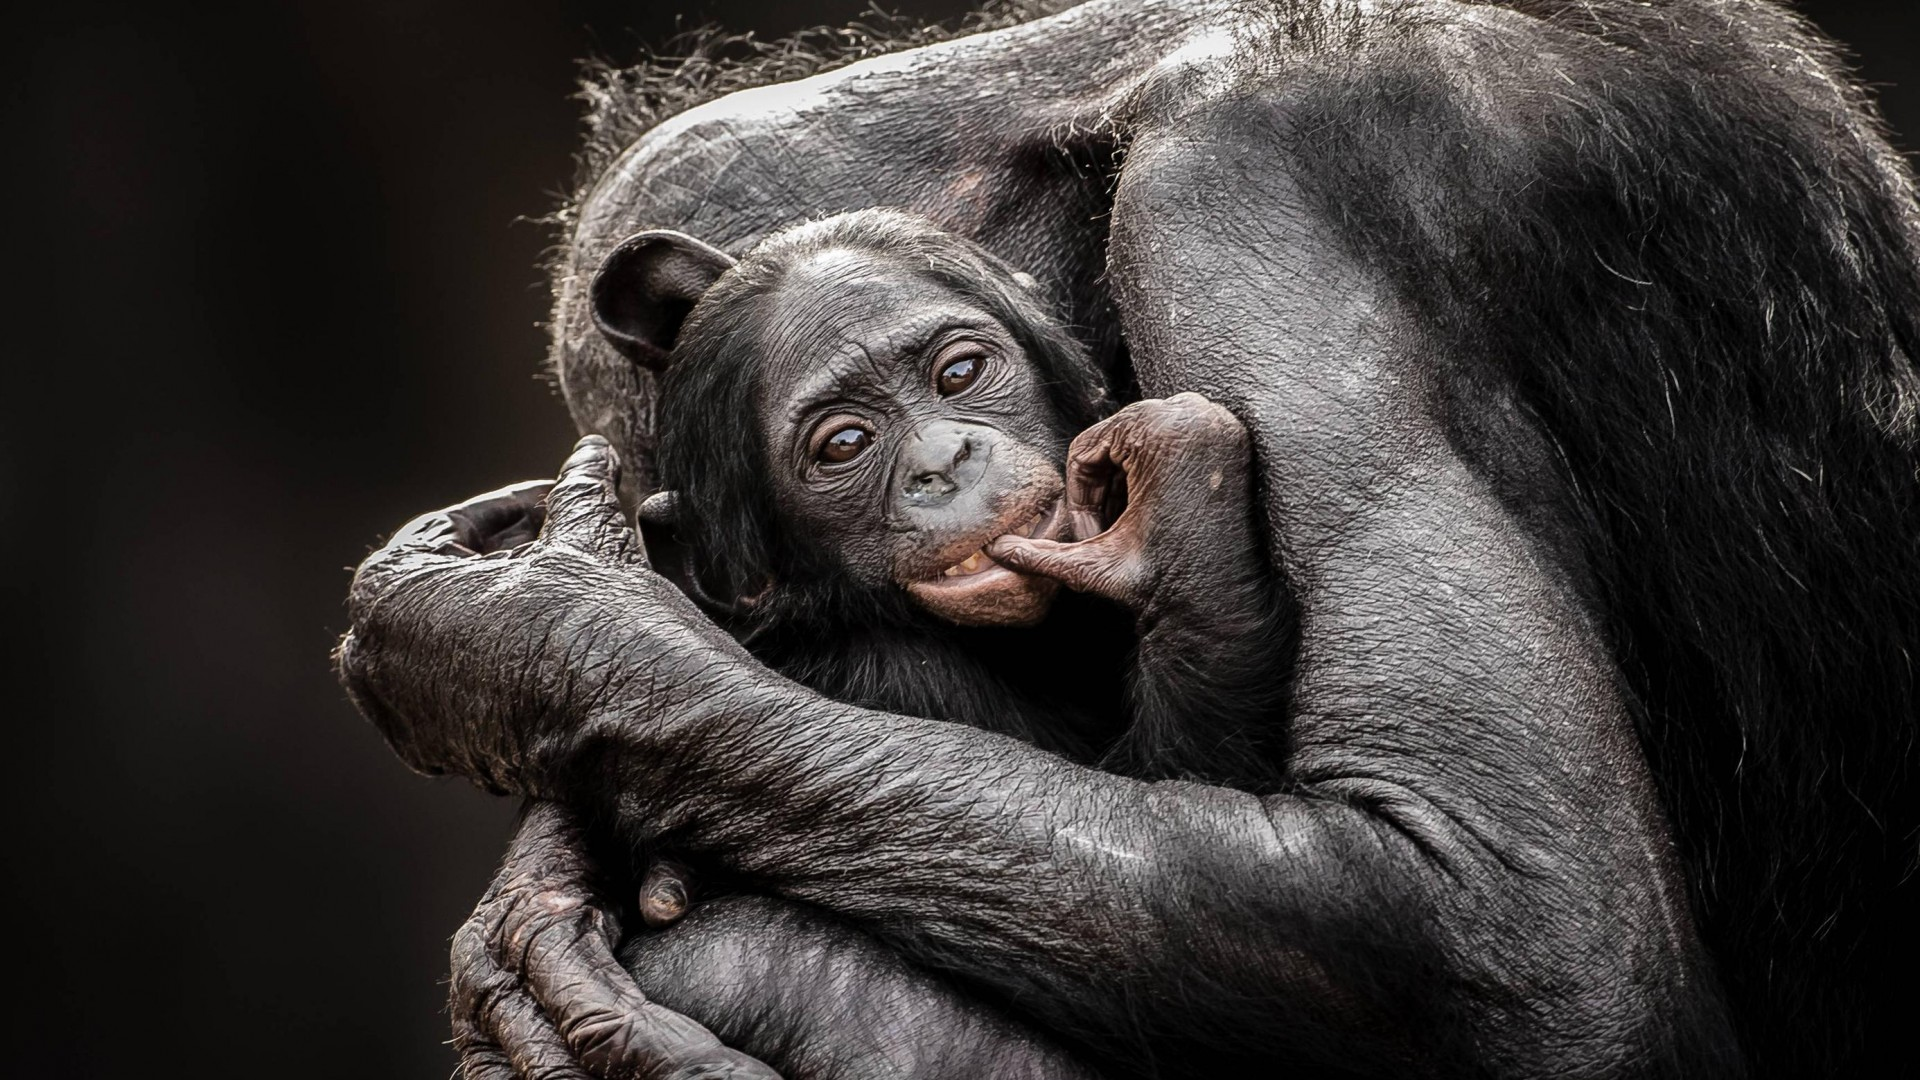 , National Geographics, Monkey, Baby, Hugs (horizontal)